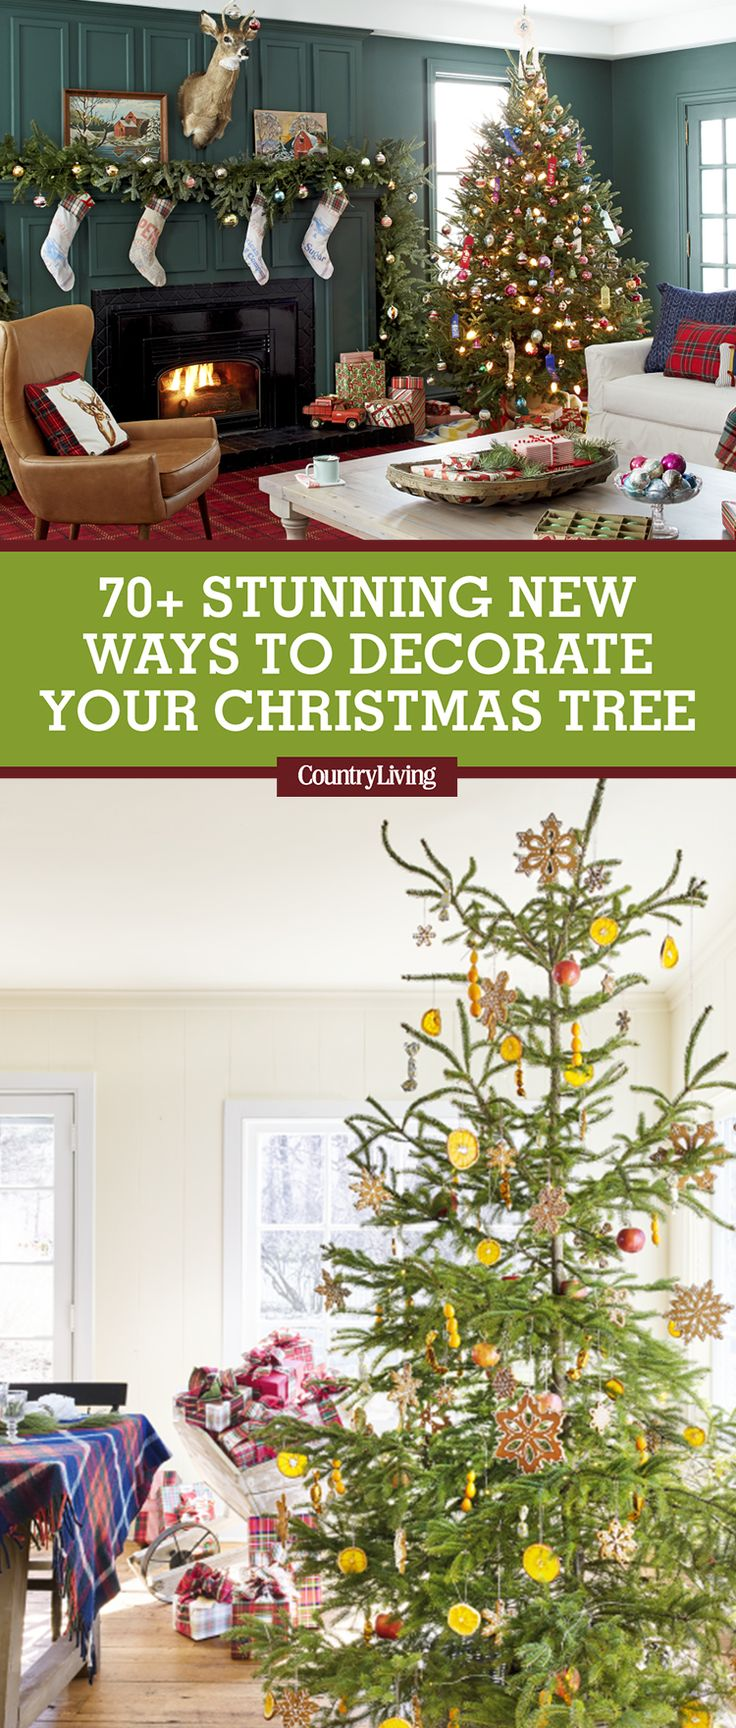 276 best Christmas Tree Decorating Ideas images on Pinterest ...